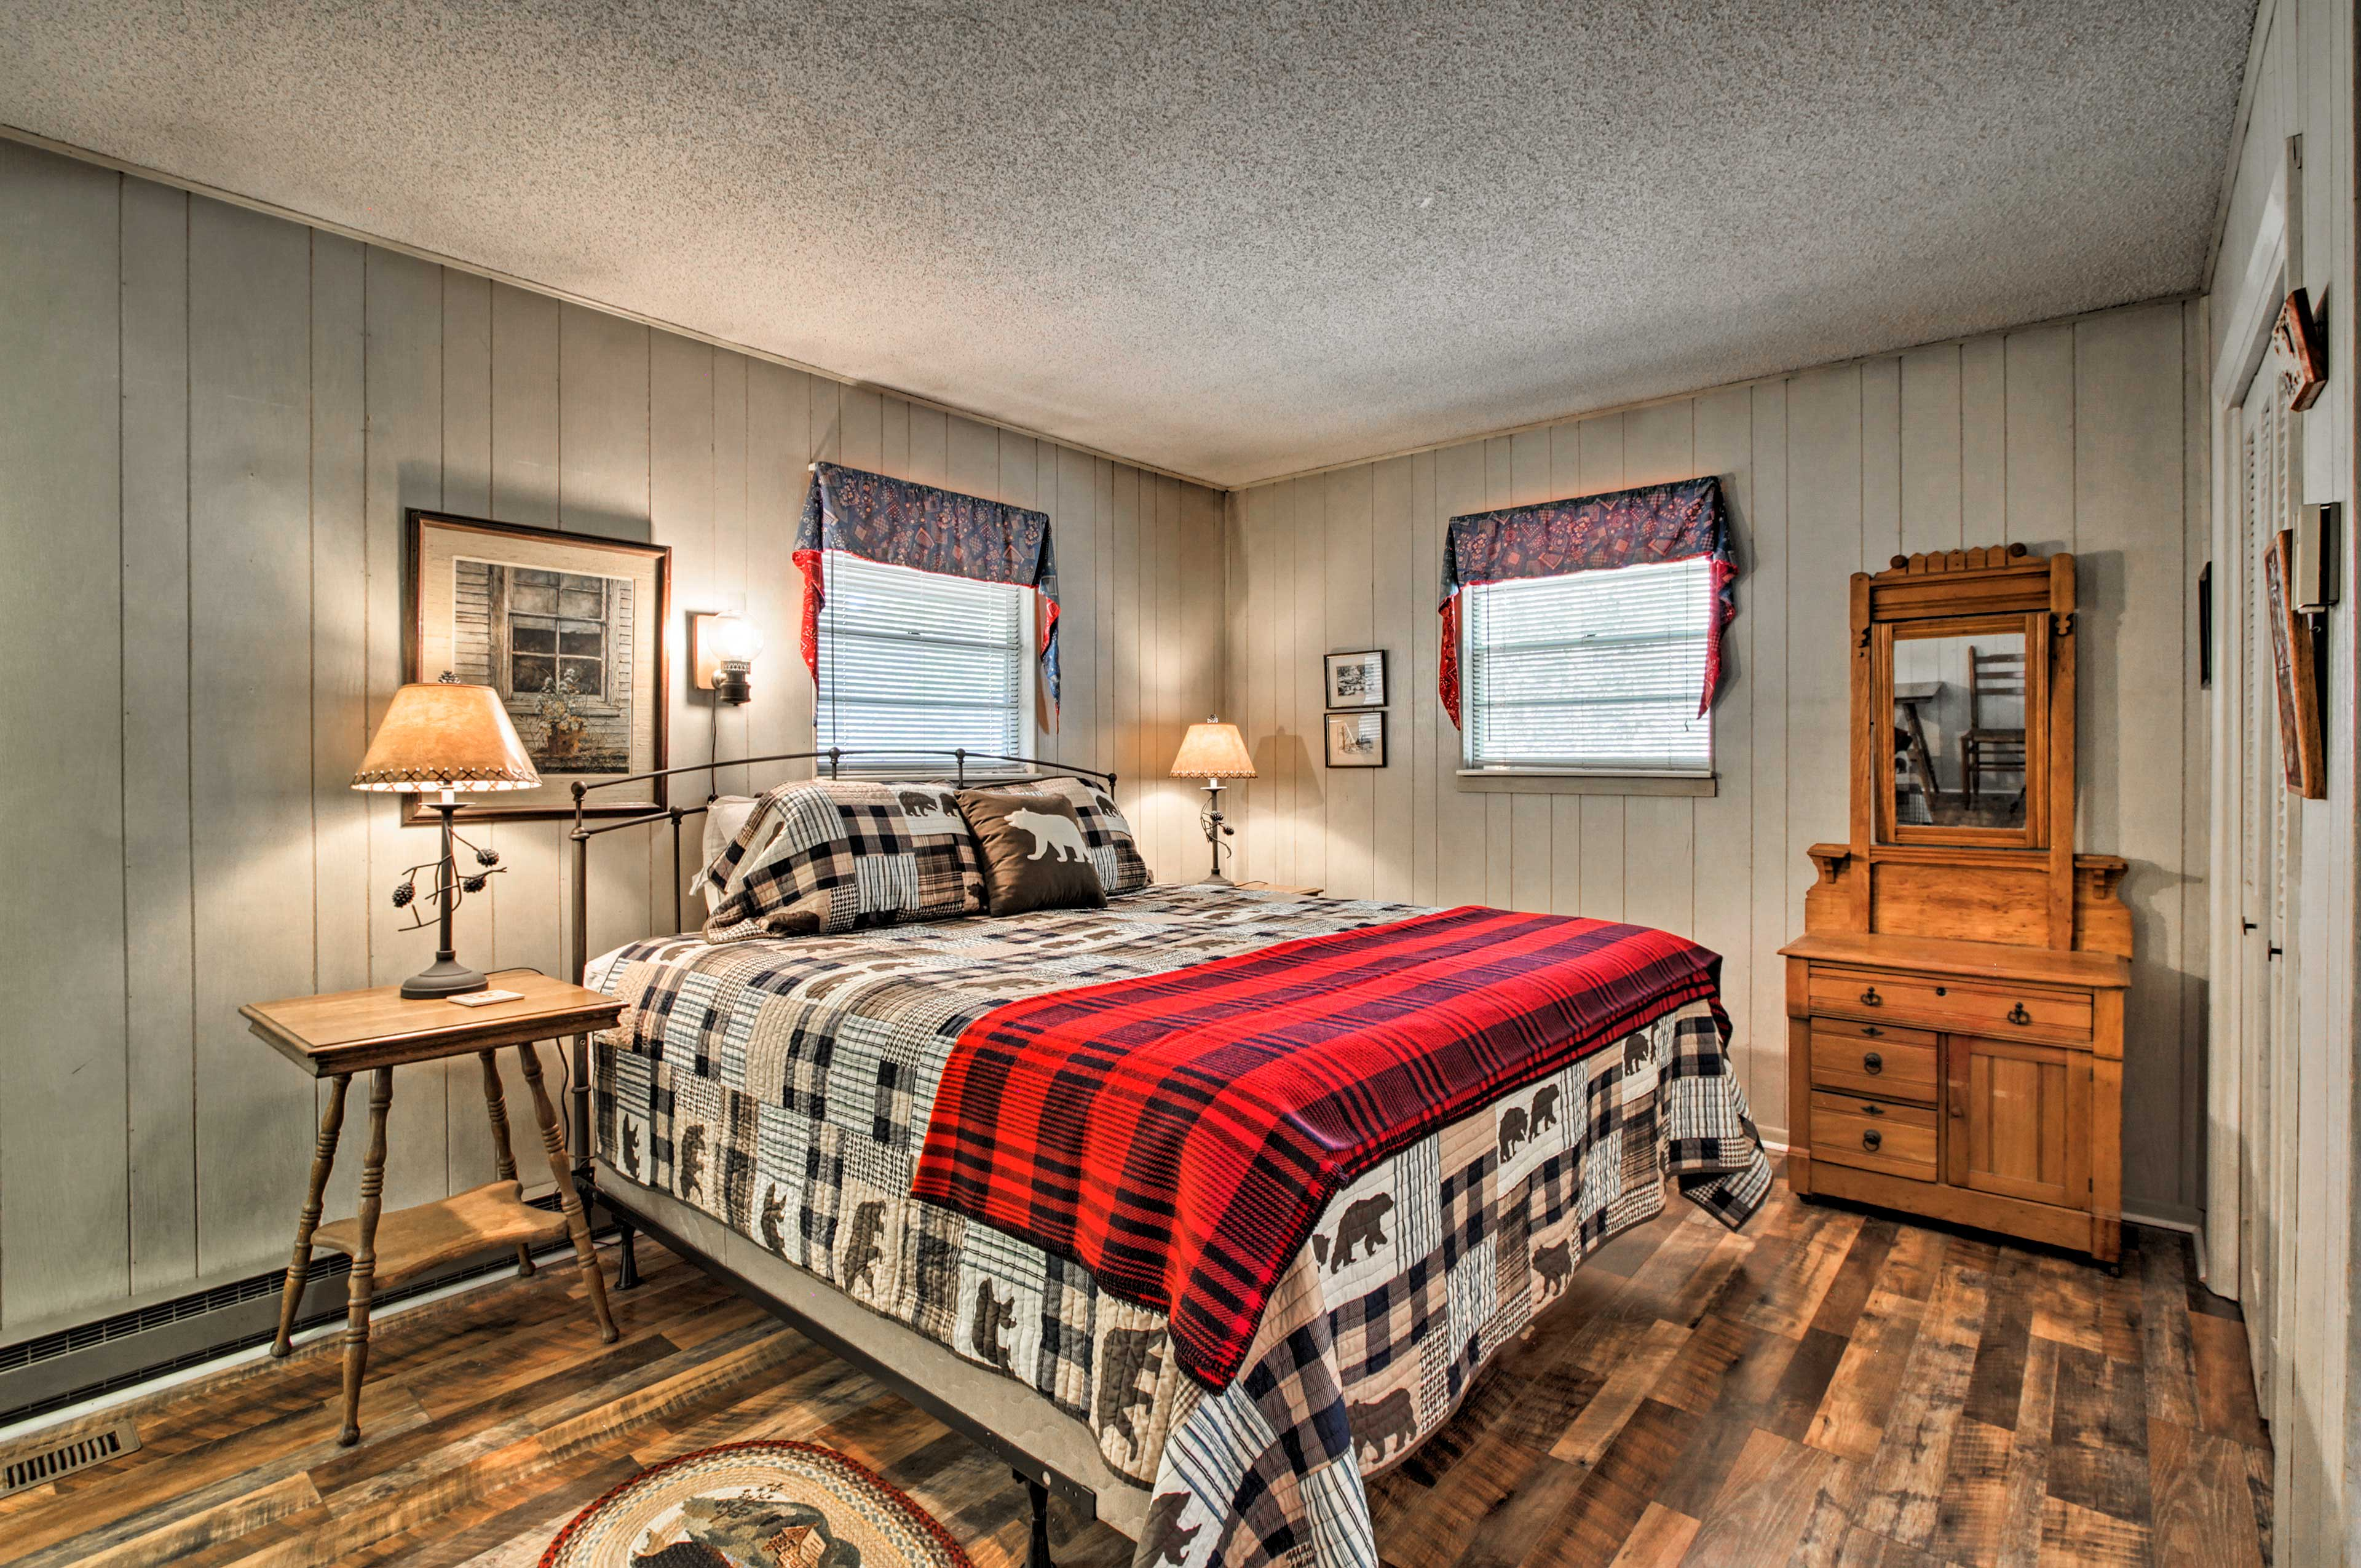 The master bedroom boasts a king-sized bed for 2.